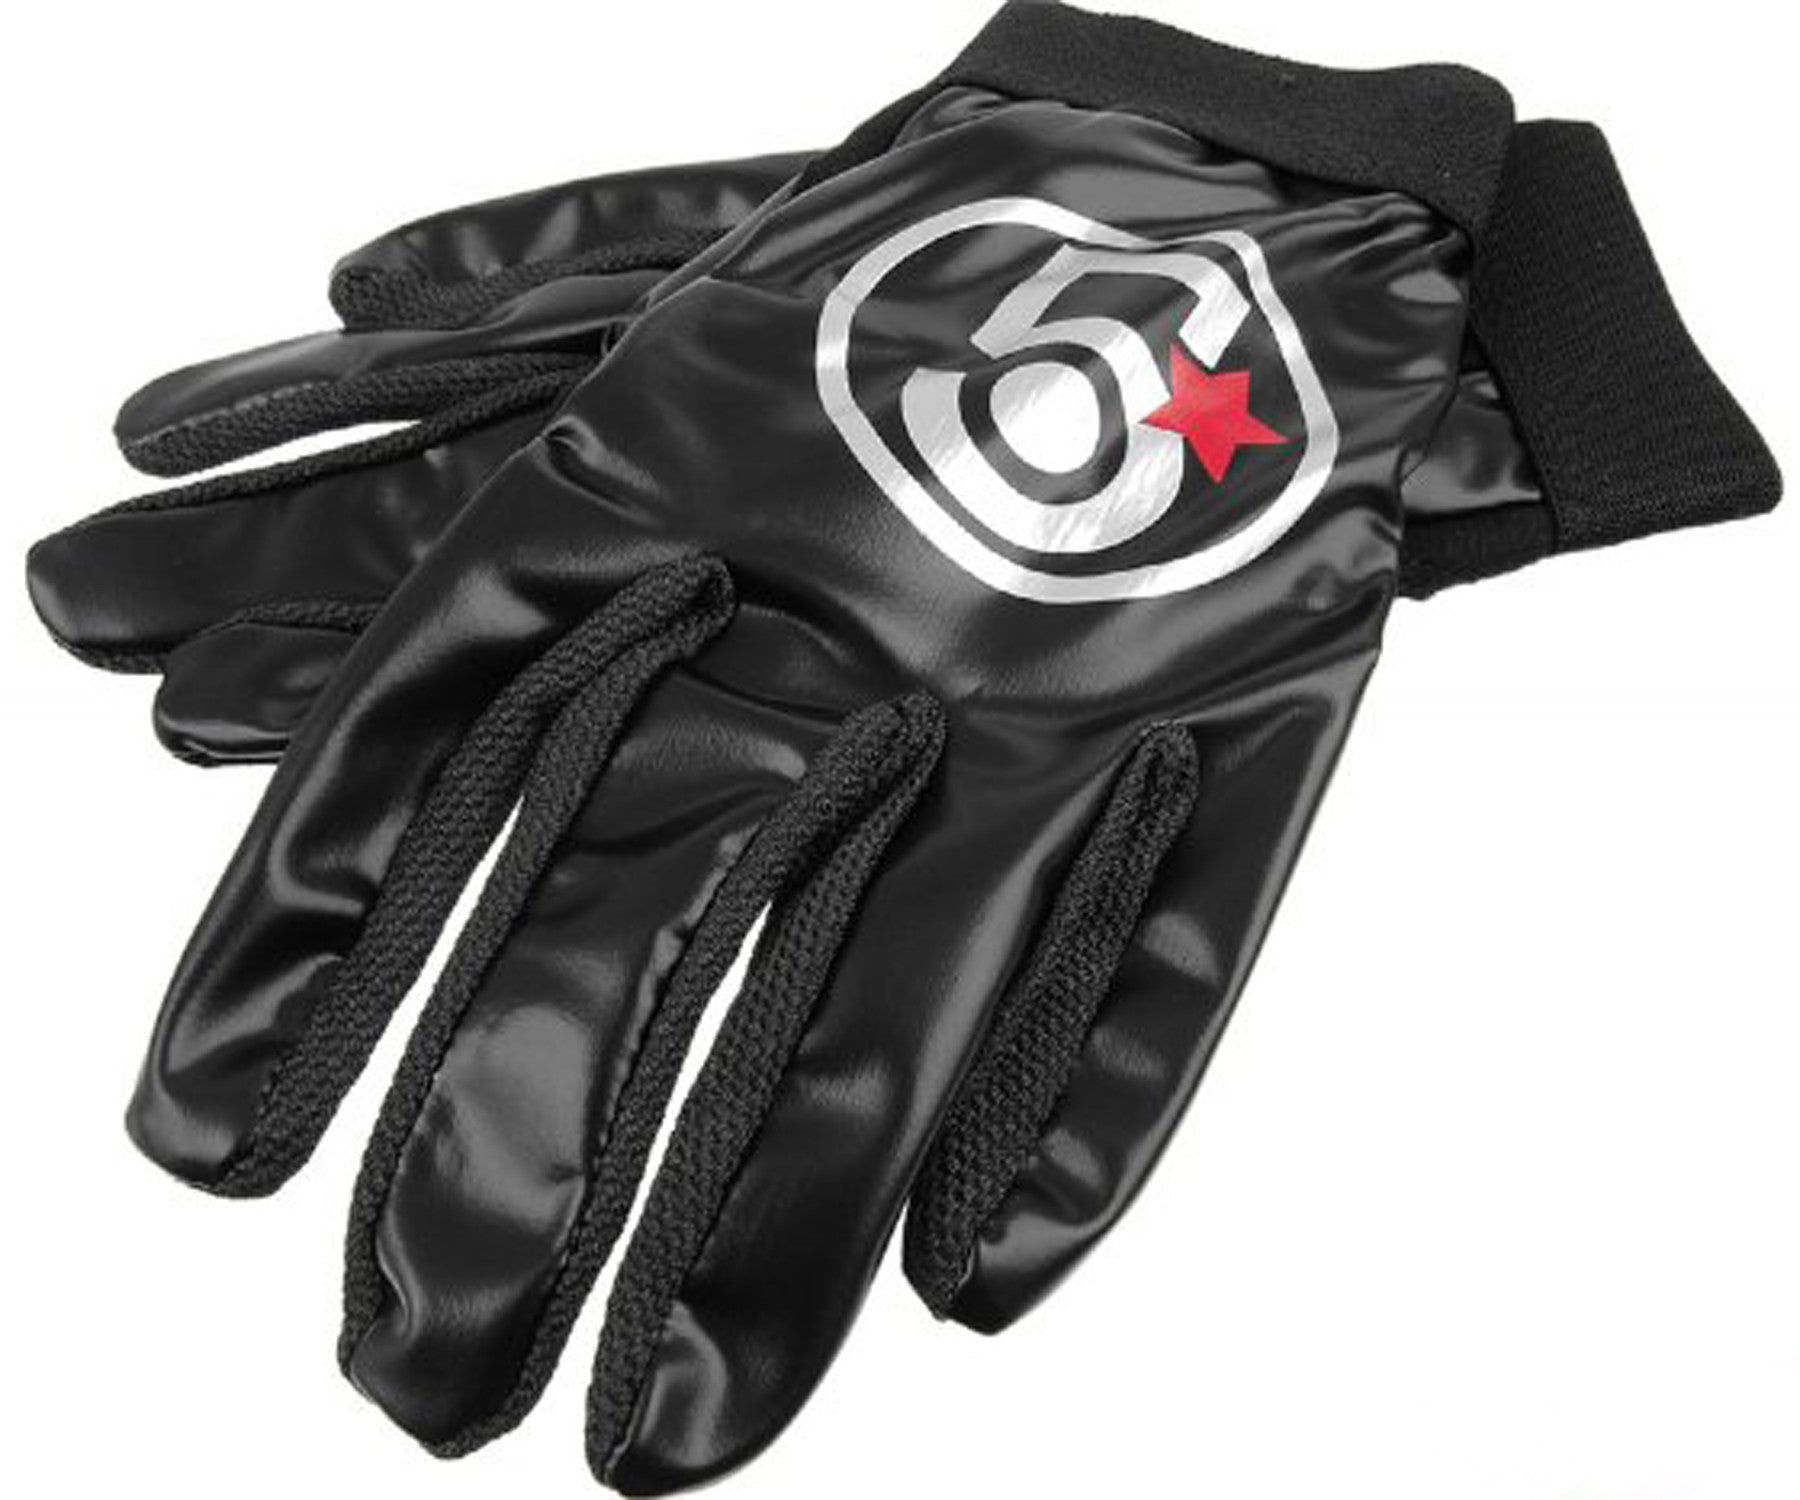 5 Bling Streamline track gloves - Retrogression